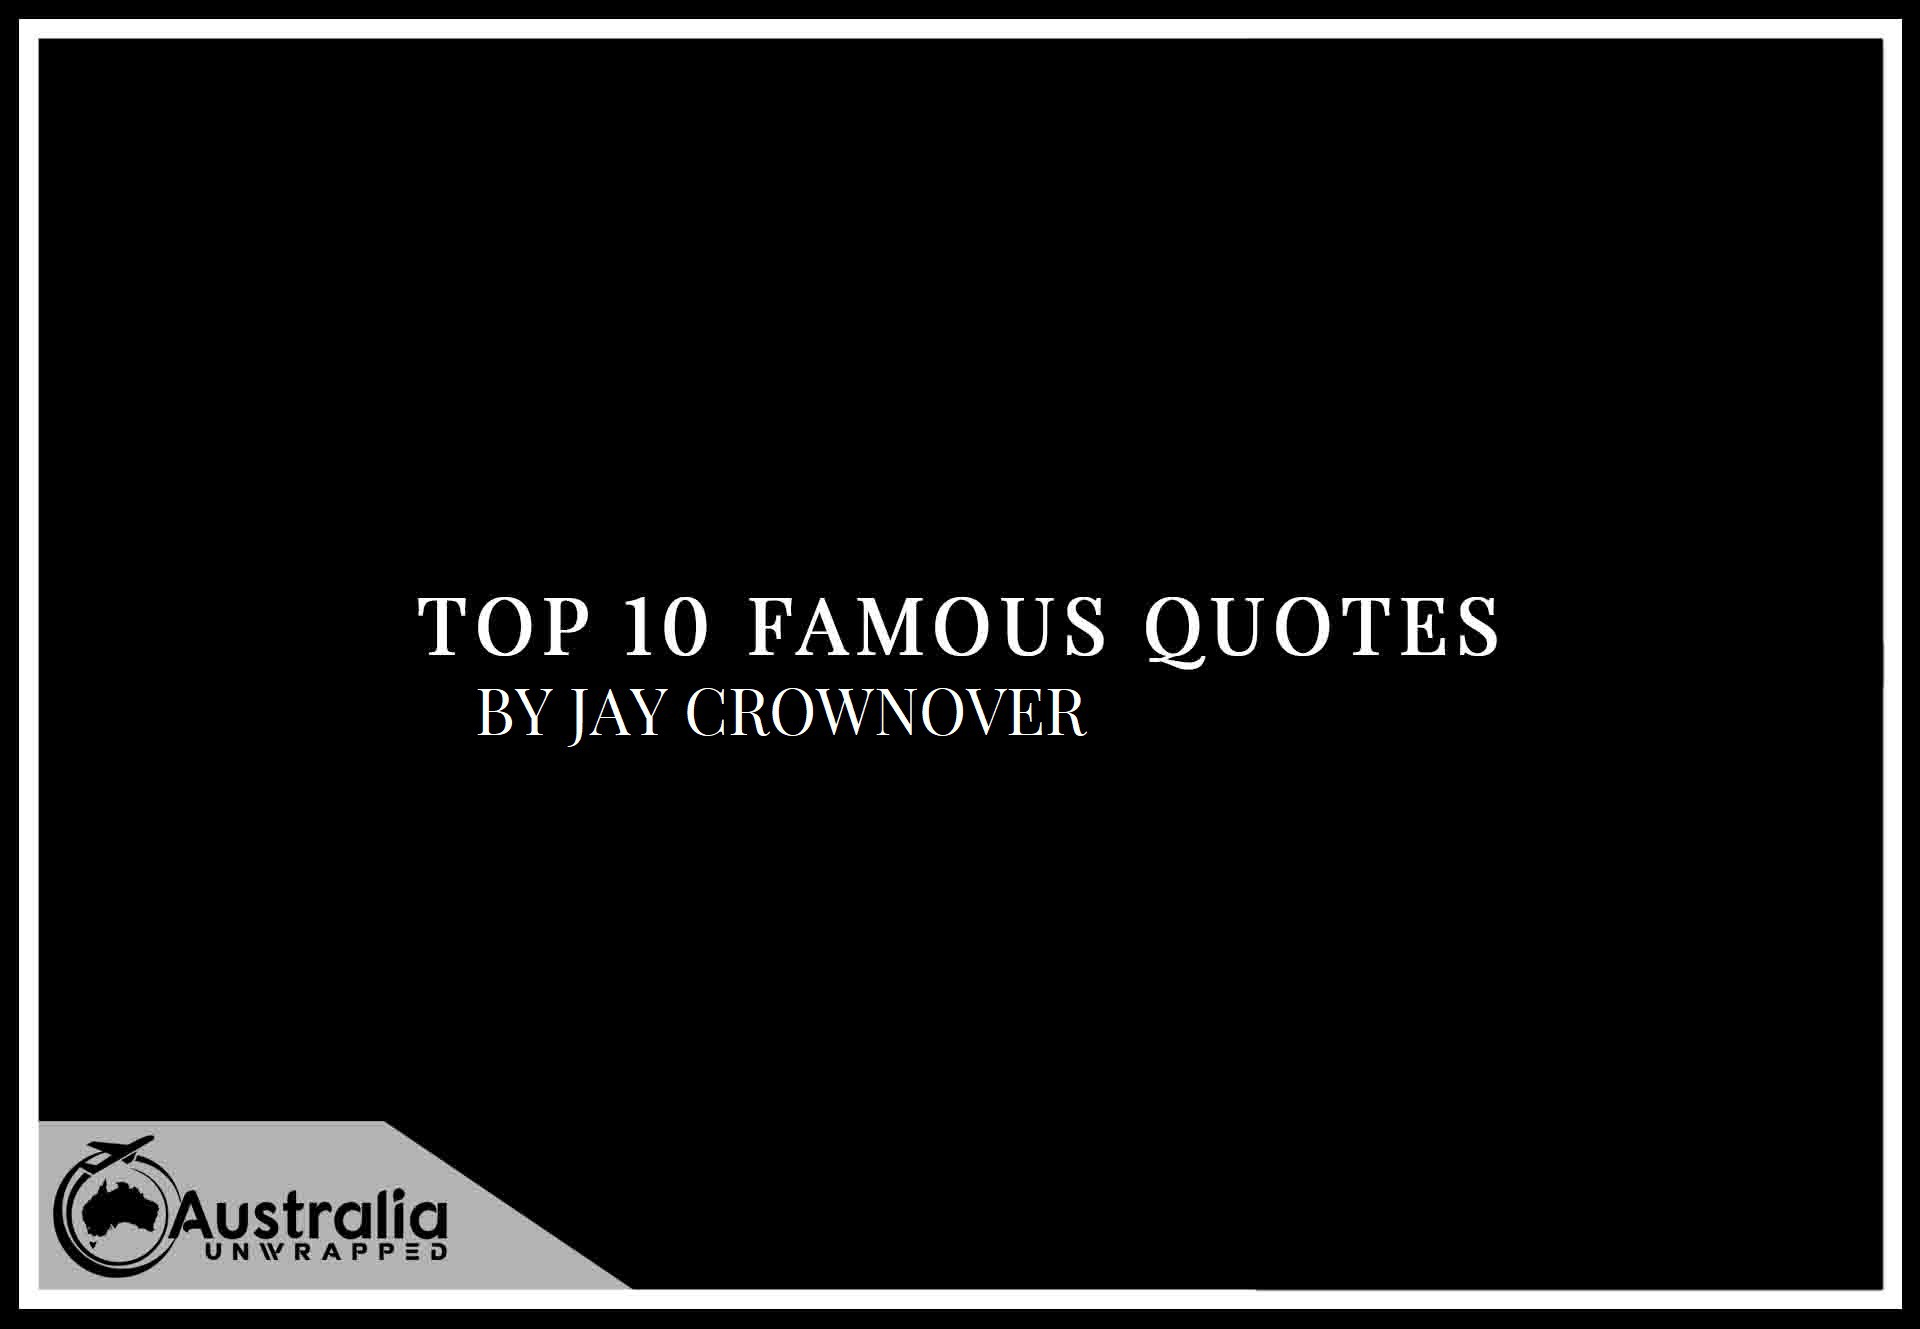 Top 10 Famous Quotes by Author Jay Crownover